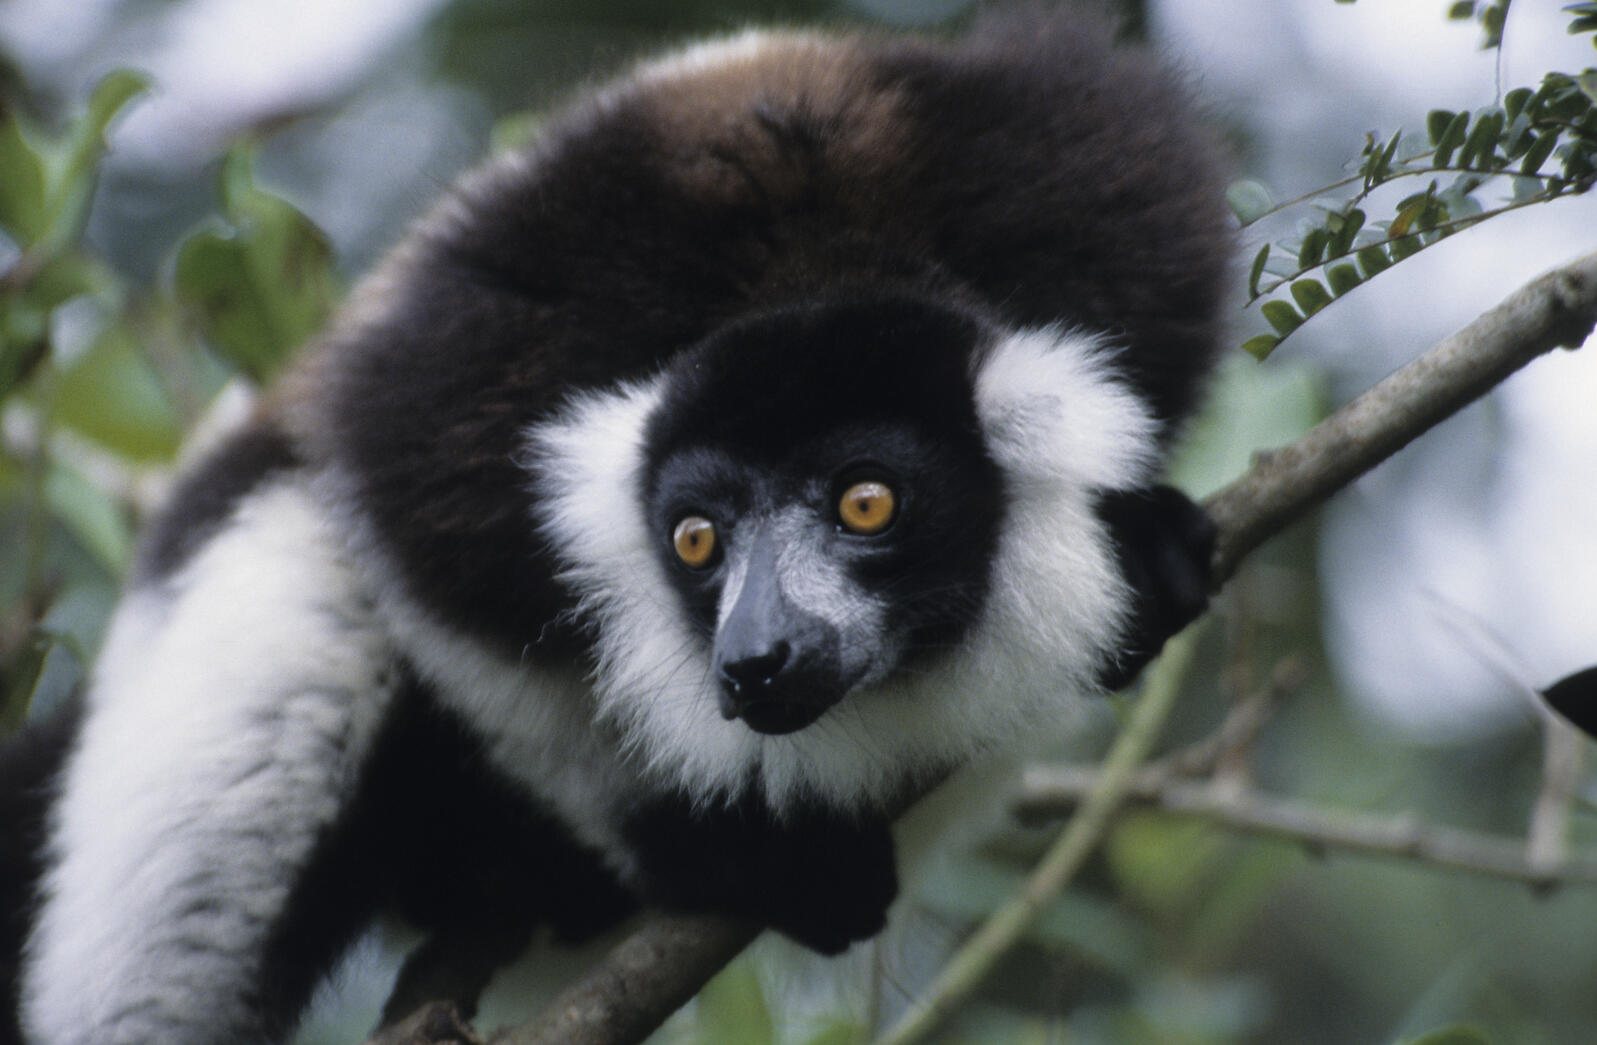 For beginners looking to jump-start their primate lists, take a trip to Madagascar, where lemurs, such as this black-and-white ruffed lemur, abound. Photograph by Russell Mittermeier